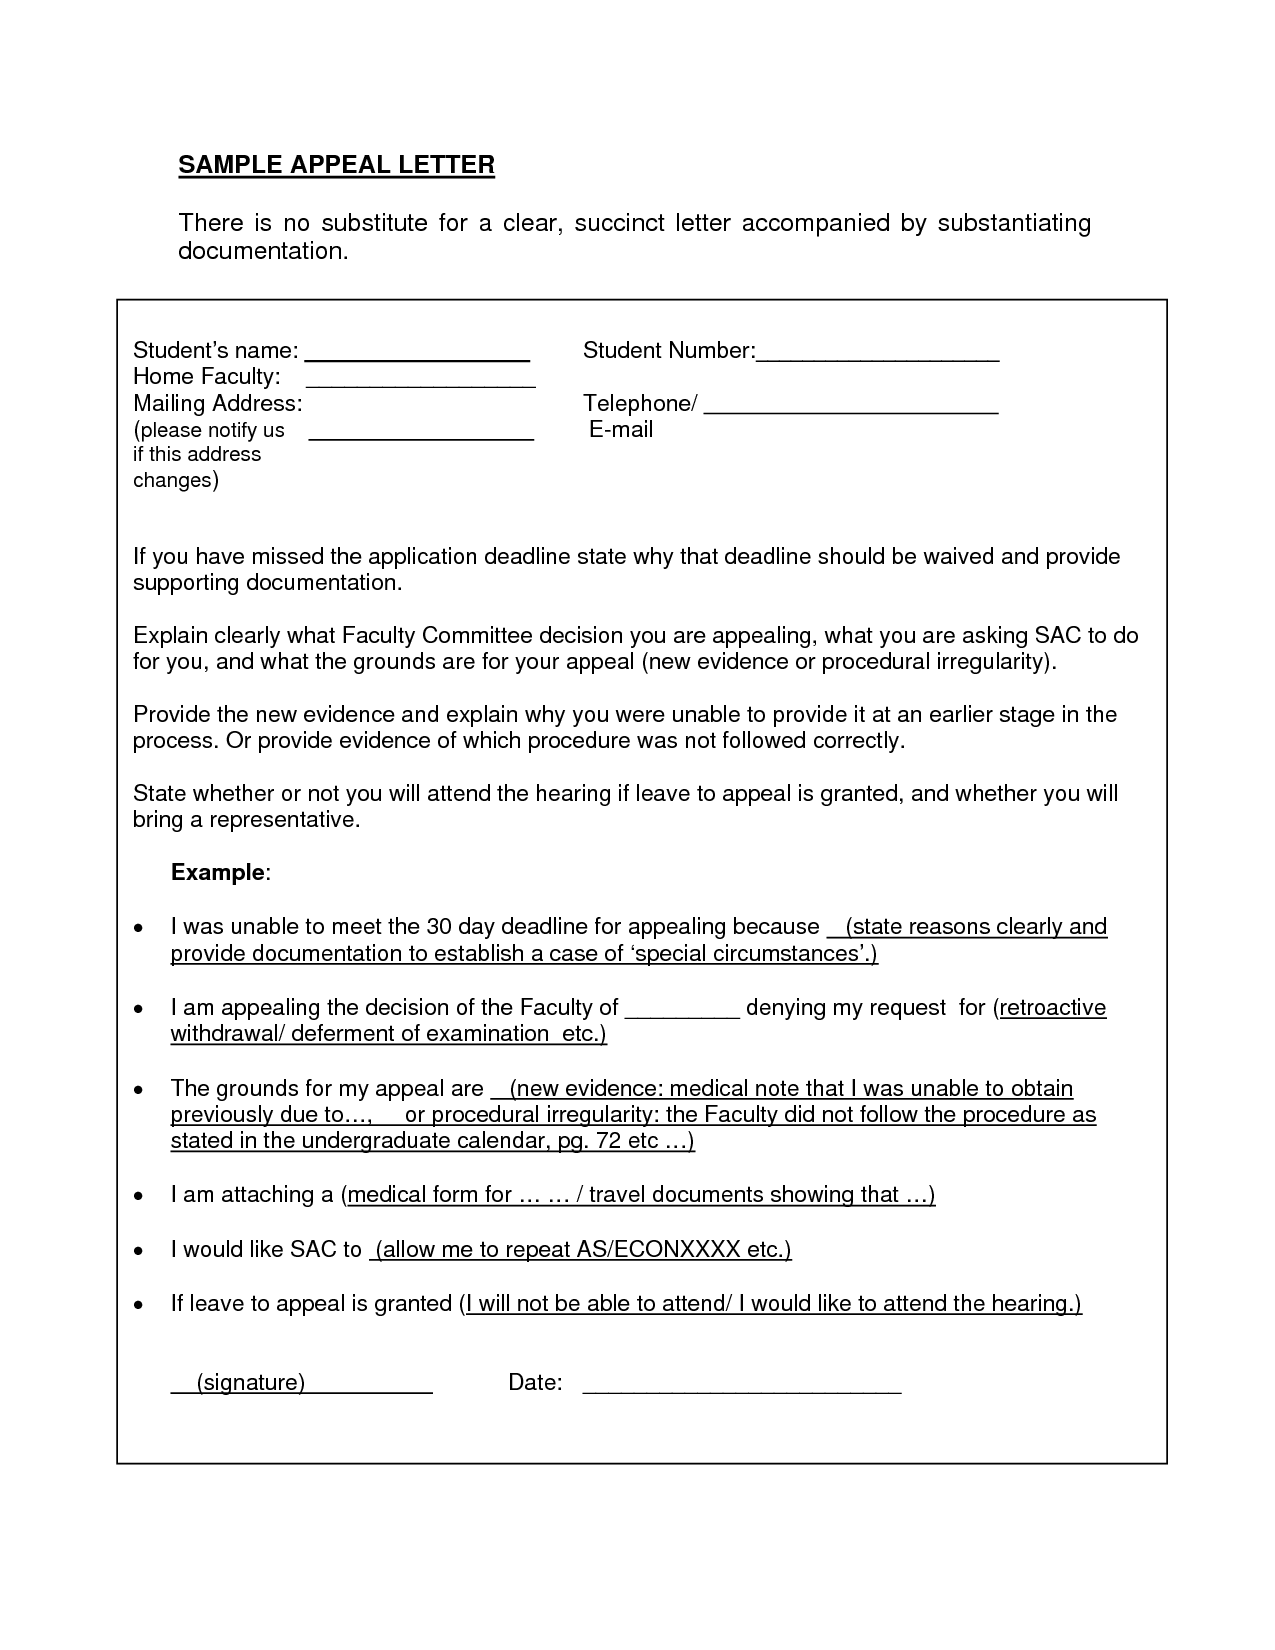 sample letter for appealing a health medical appeal letters